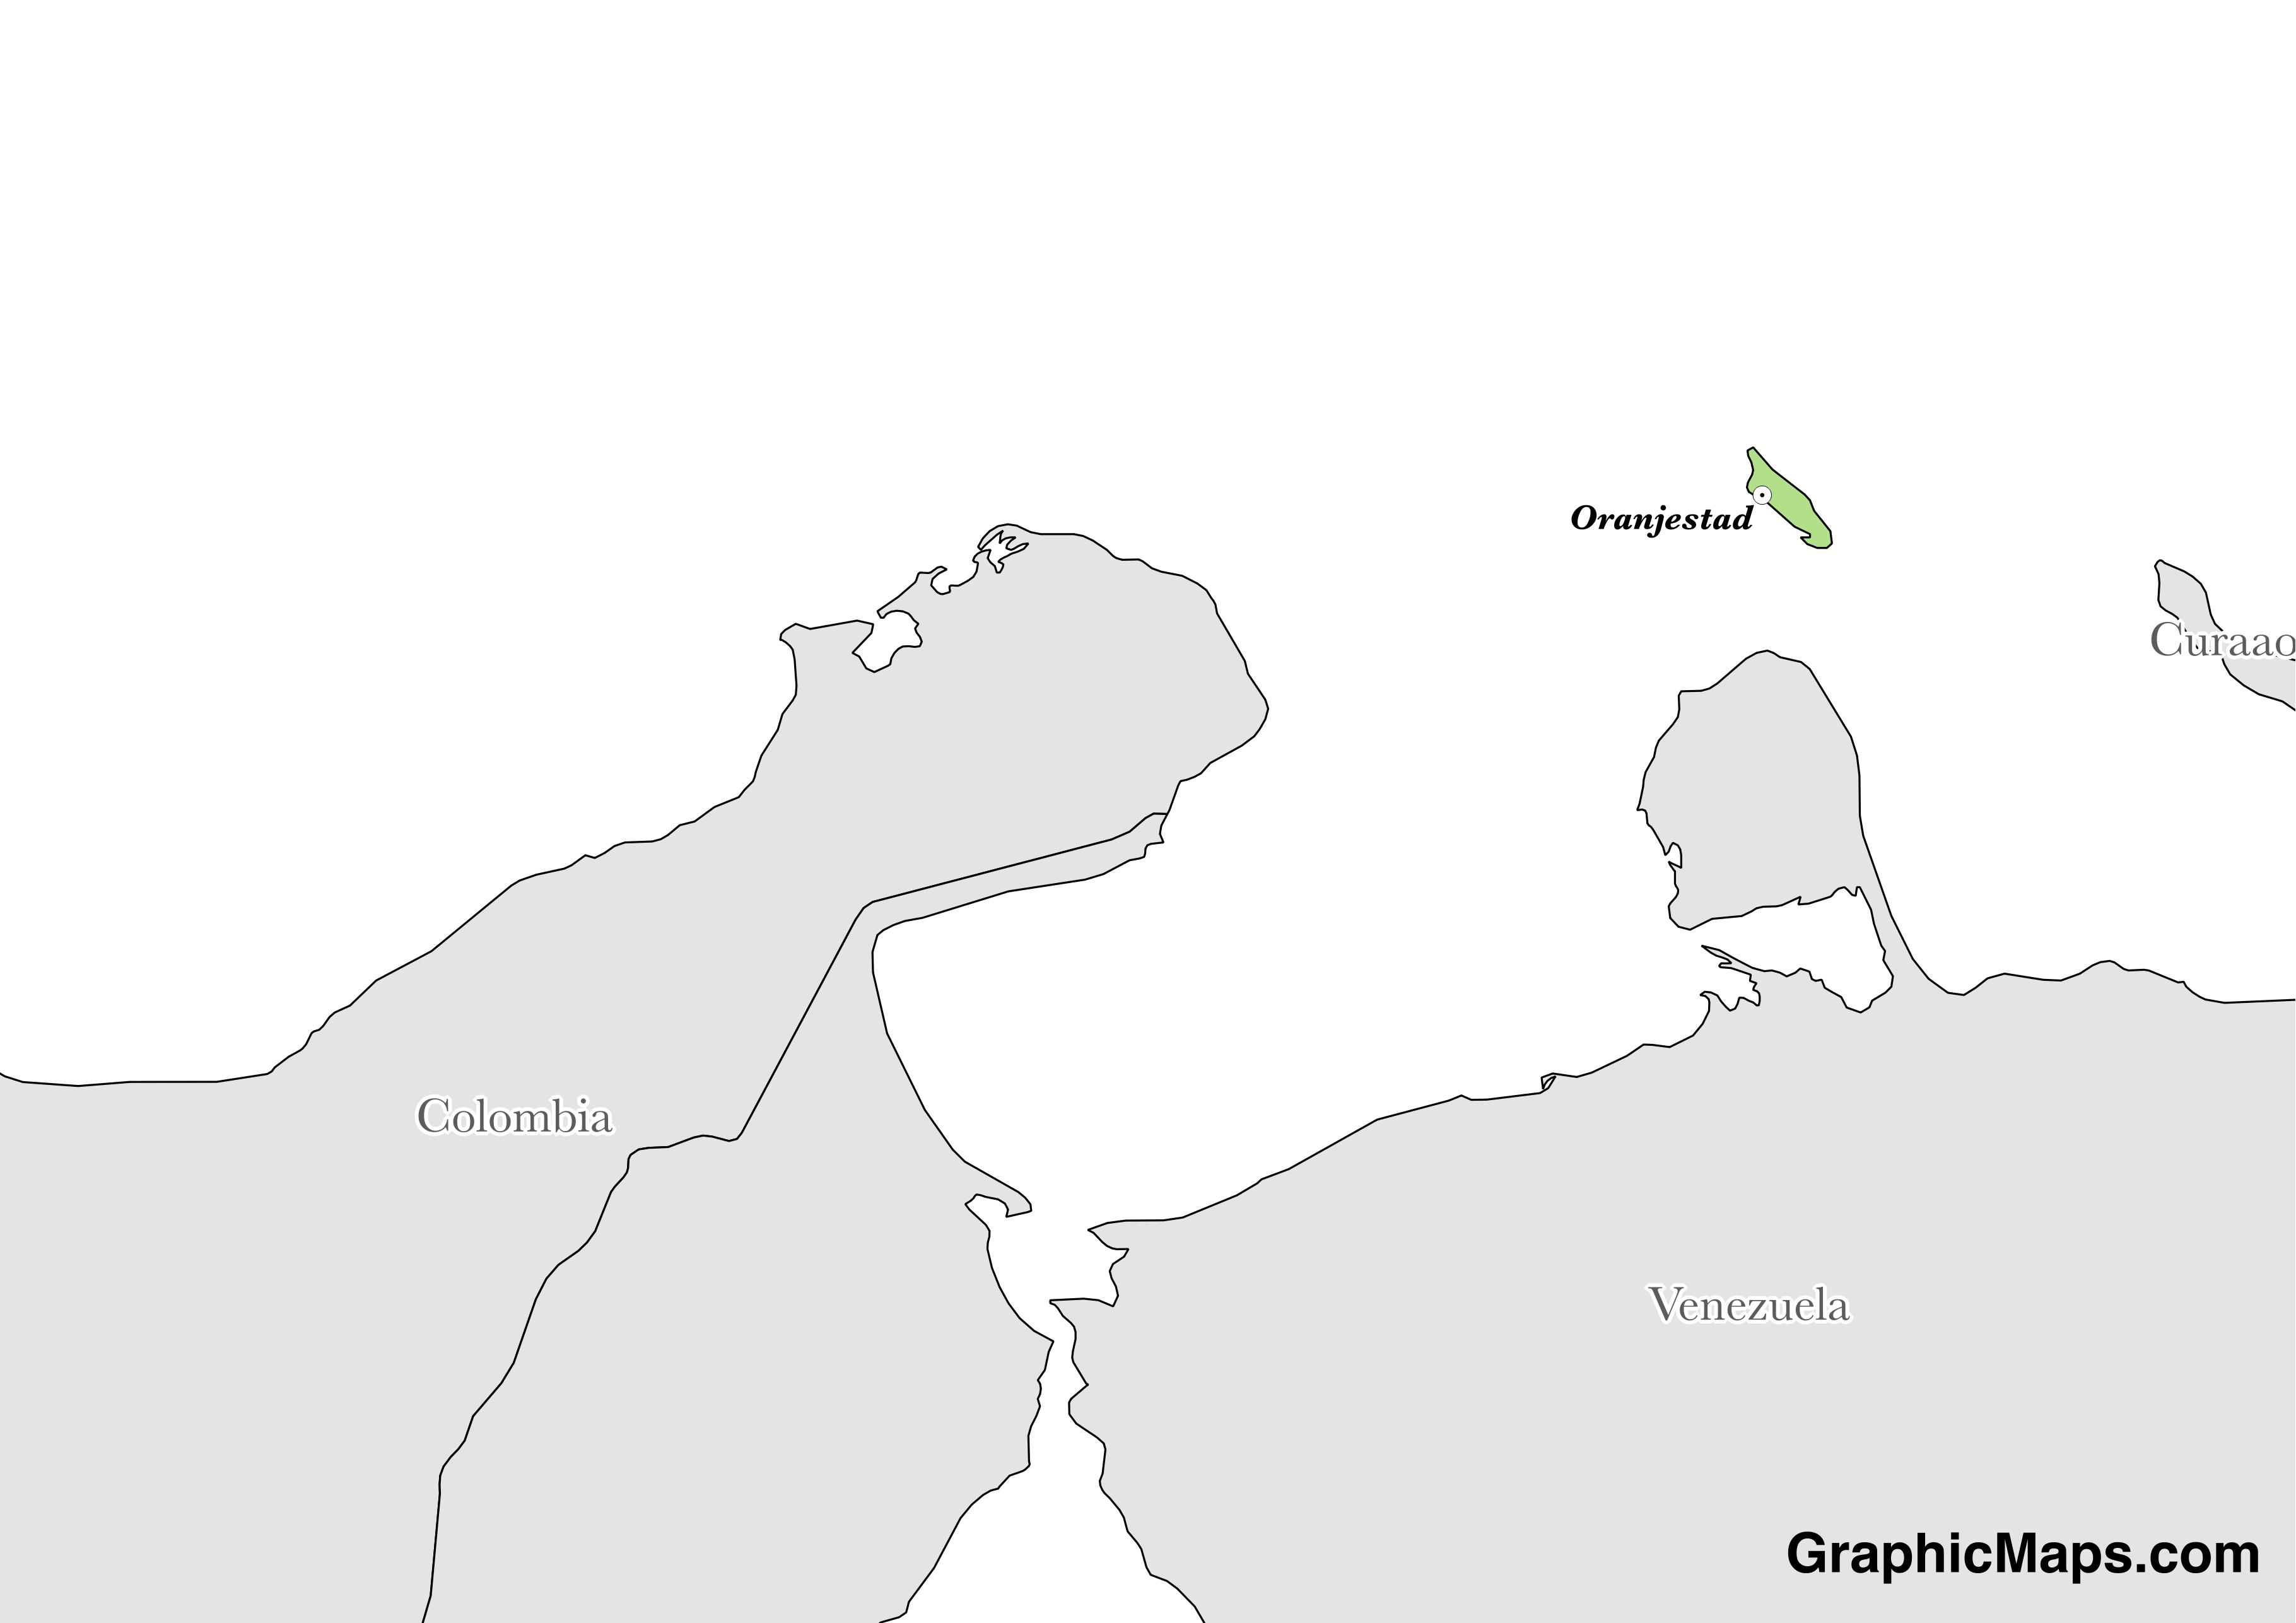 Map showing the location of Aruba